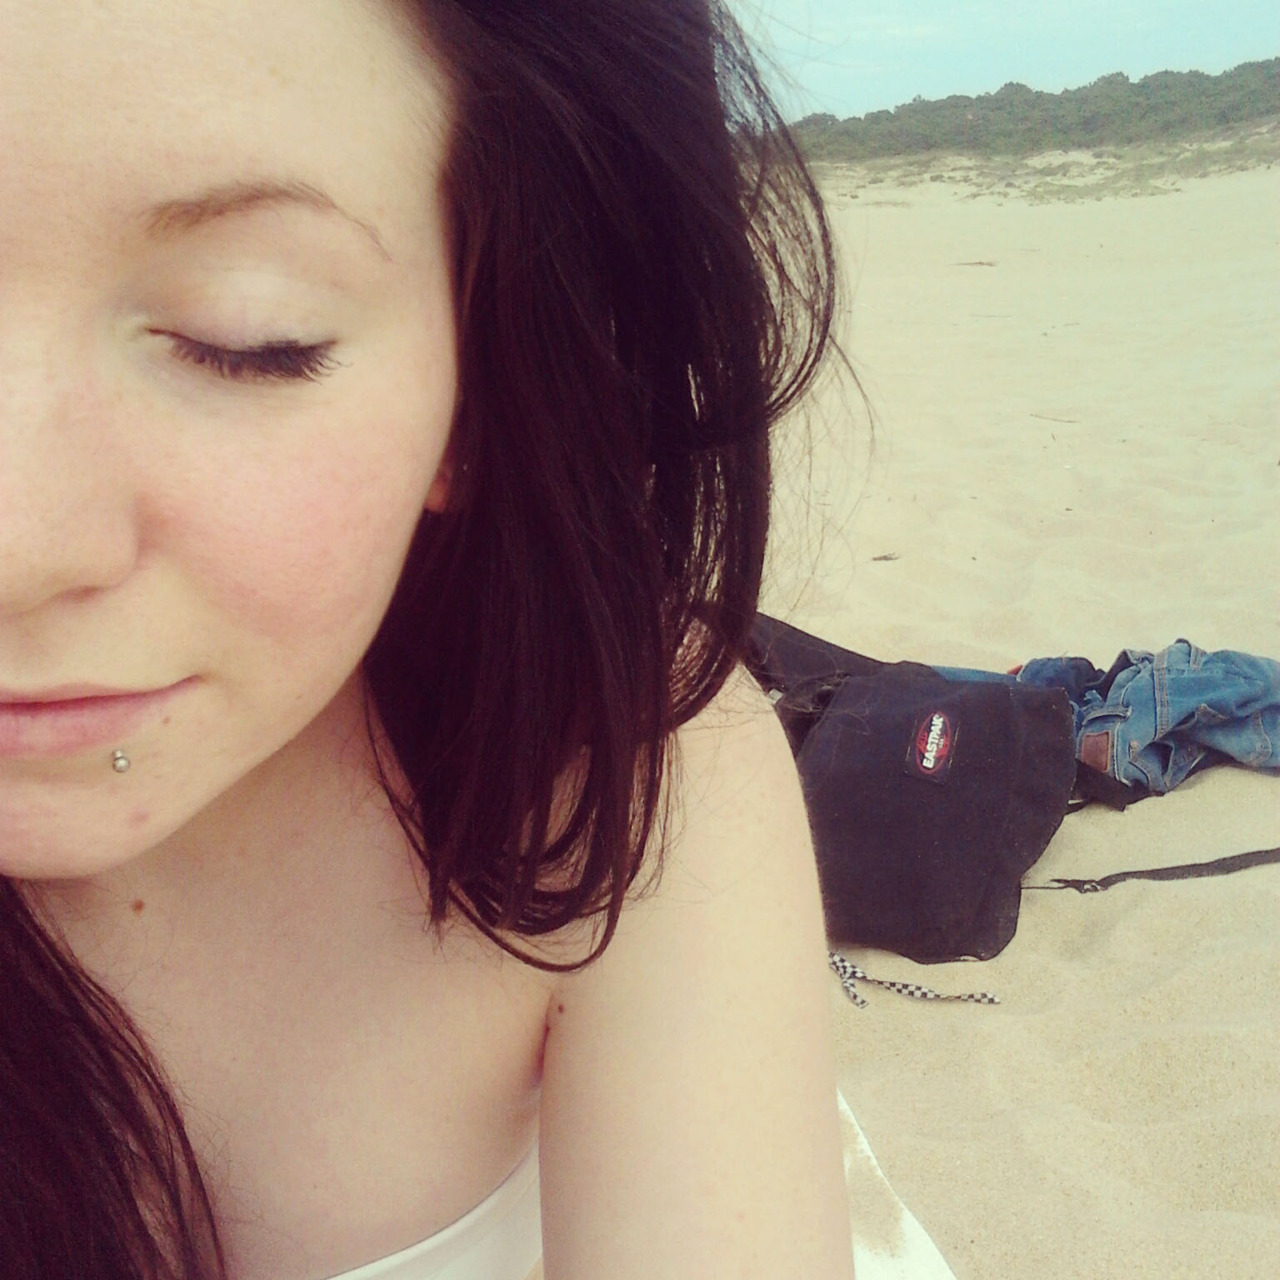 photos from the beach today :3 first of the year